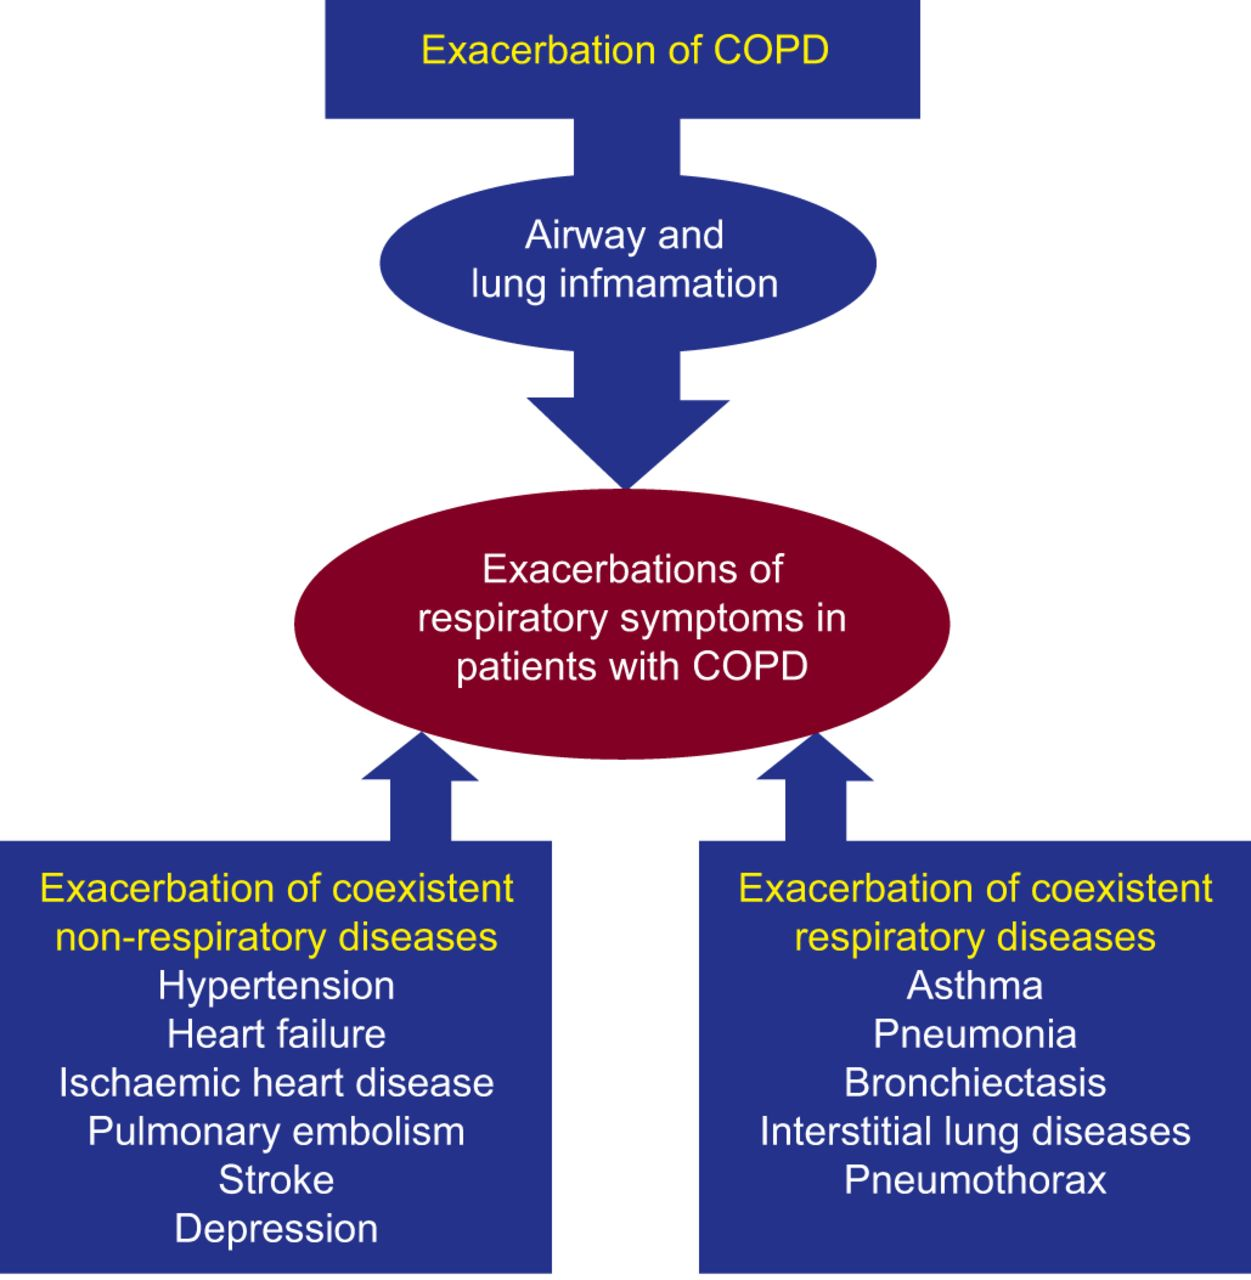 Exacerbation of respiratory symptoms in COPD patients may